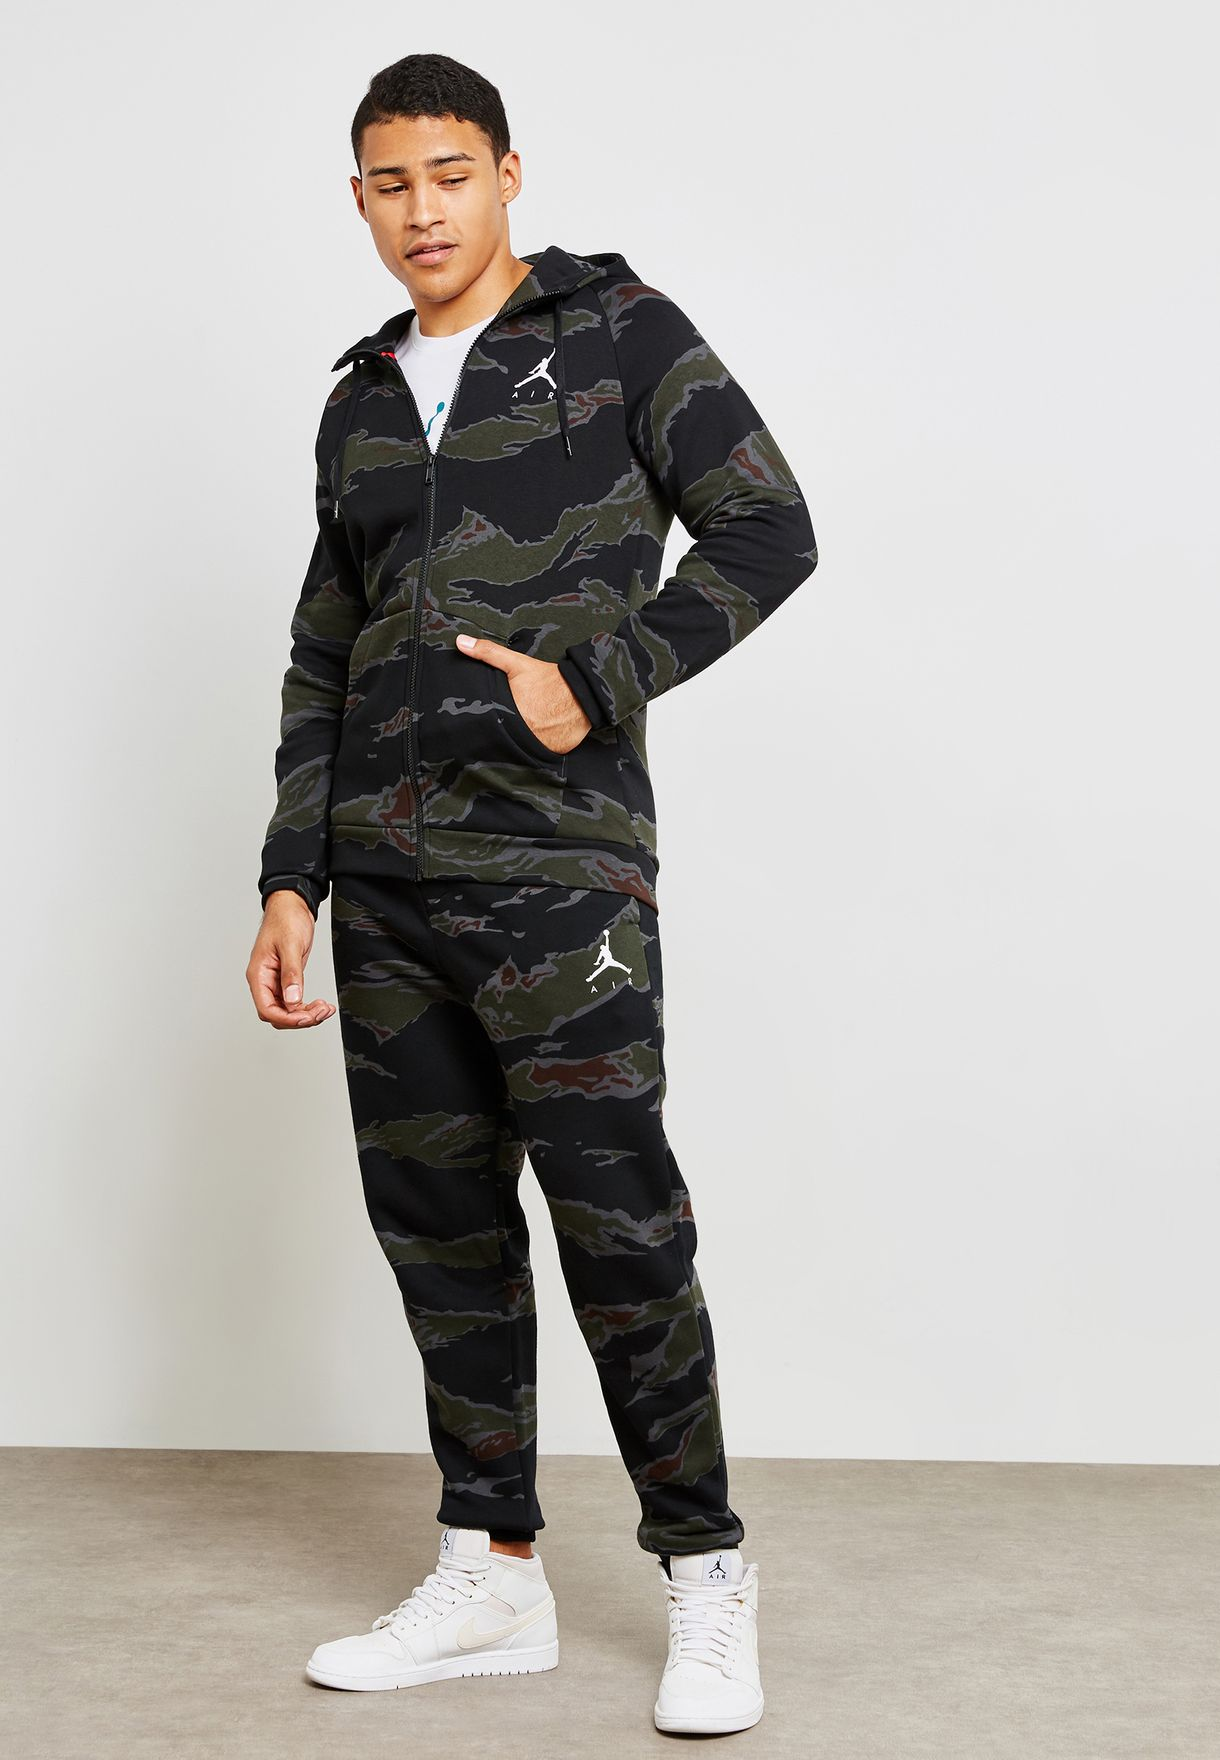 8b7d92886dd558 Shop Nike prints Jordan Jumpman Fleece Camo Sweatpants AV2316-010 ...